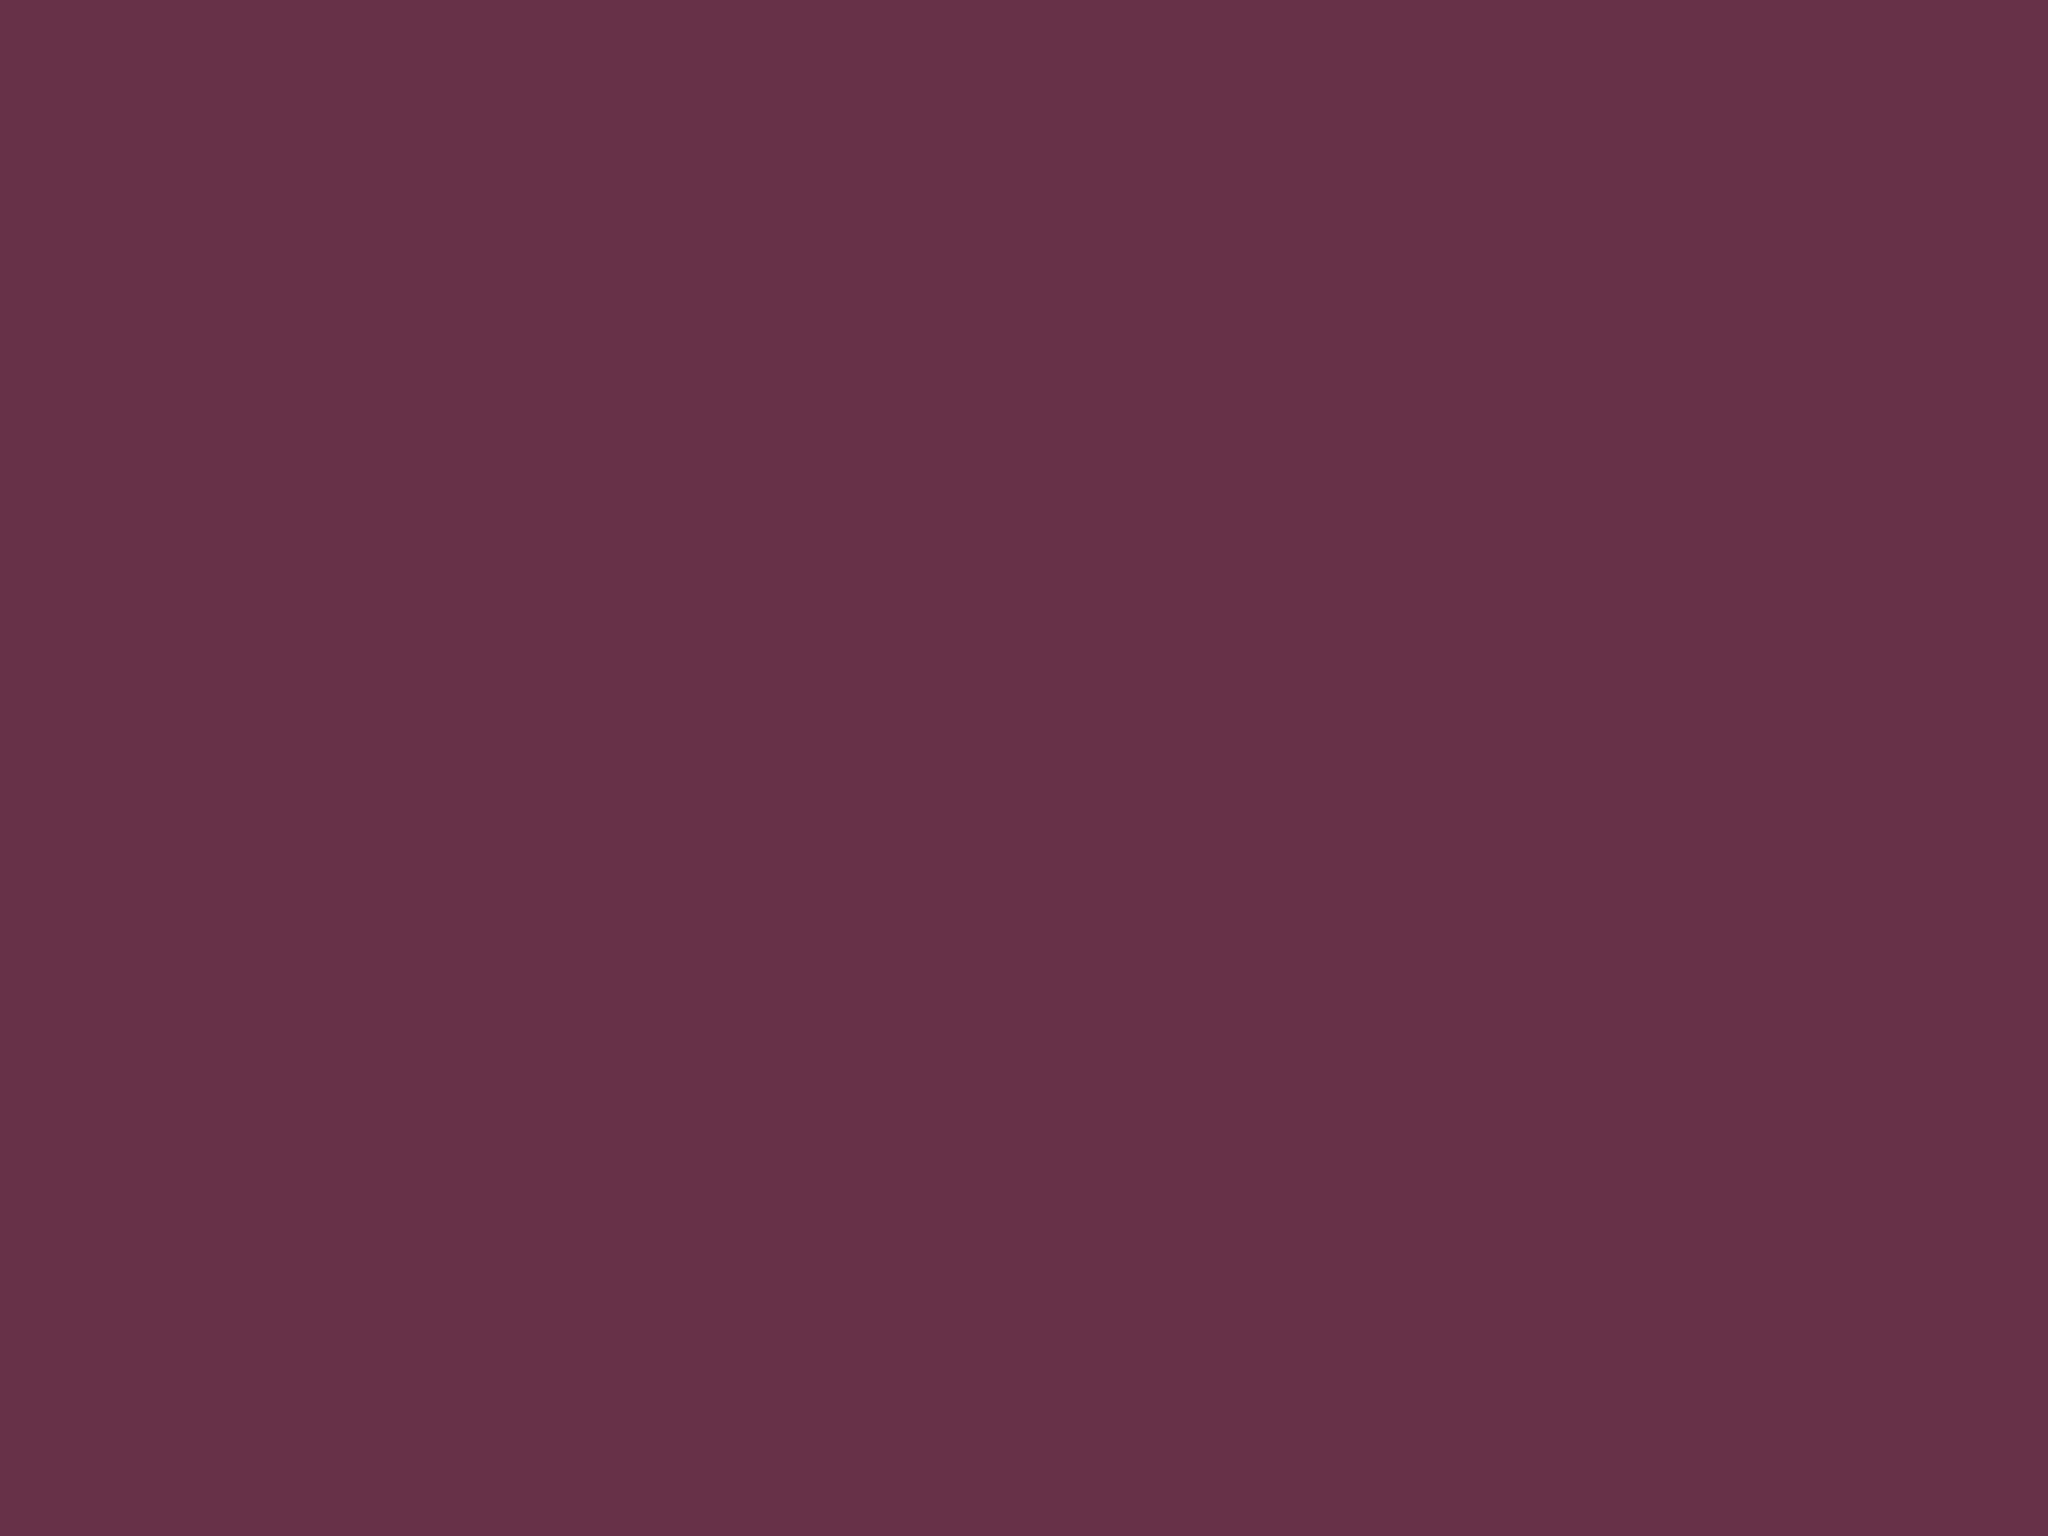 2048x1536 Wine Dregs Solid Color Background